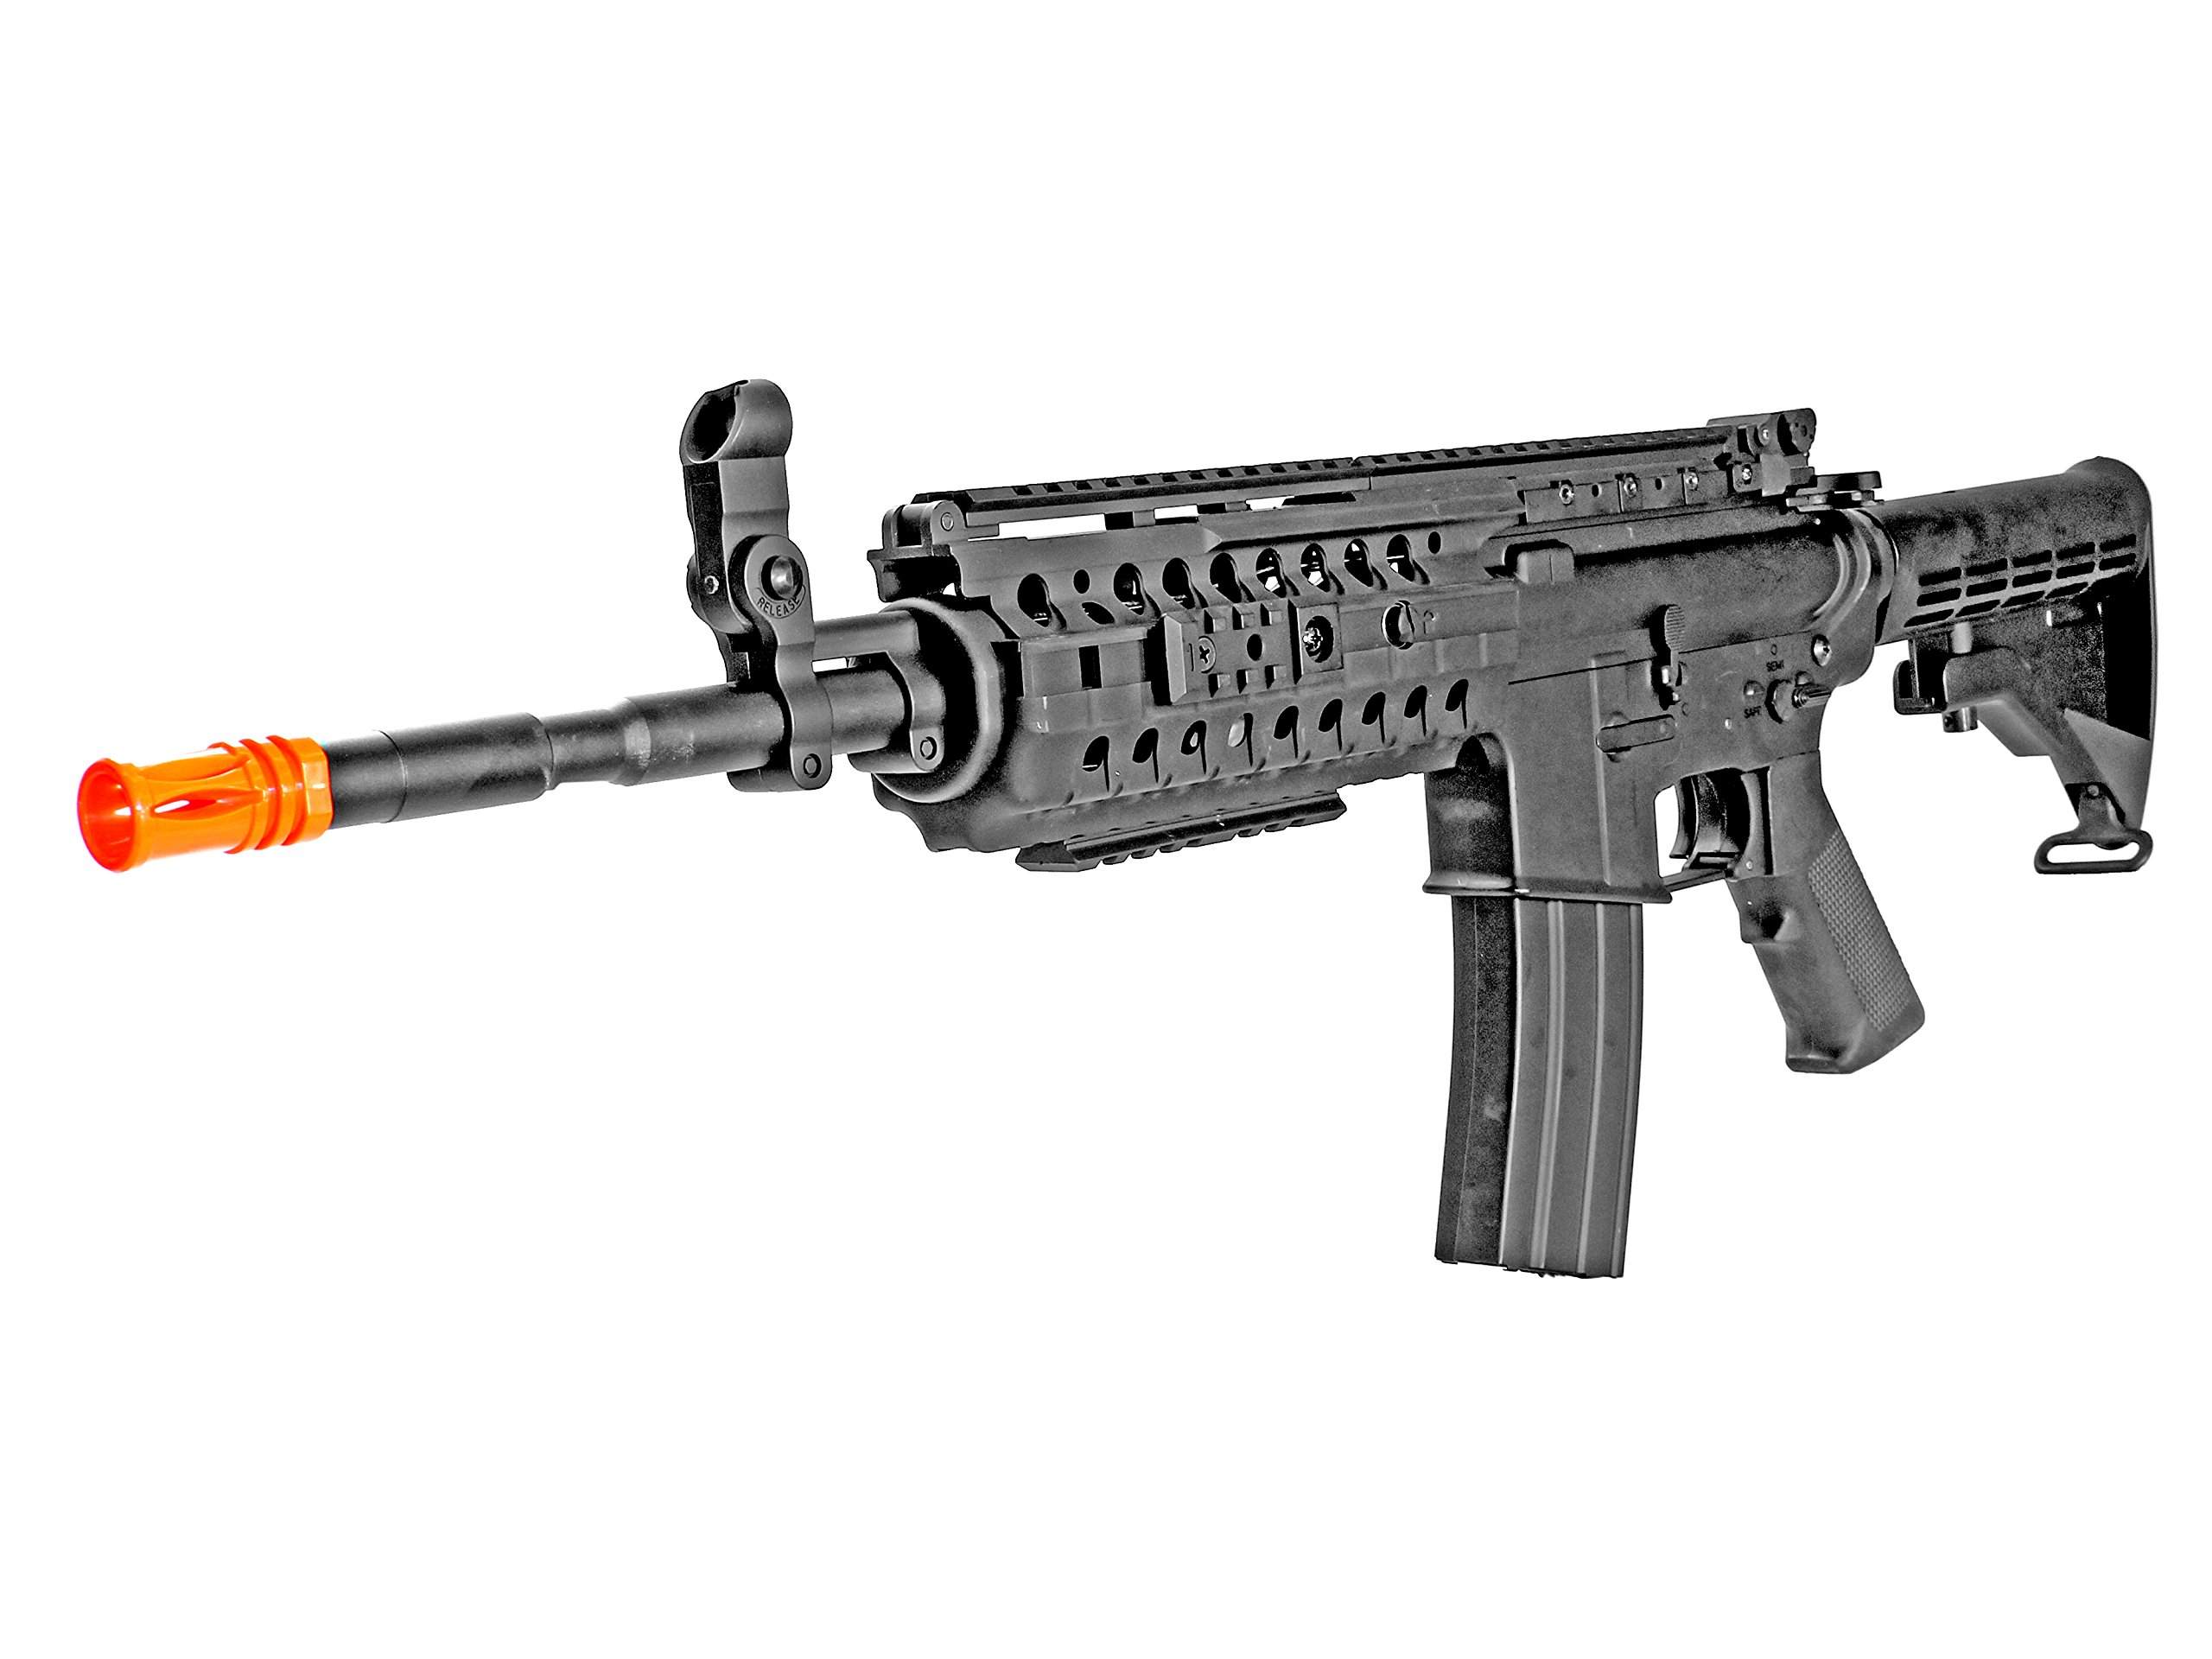 MetalTac JG FB-6613 Electric Airsoft Gun with Rail Mounting System, Full Metal Body, Metal Gearbox Version 2, Auto AEG, Upgraded Powerful Spring 410 Fps with .20g BBs